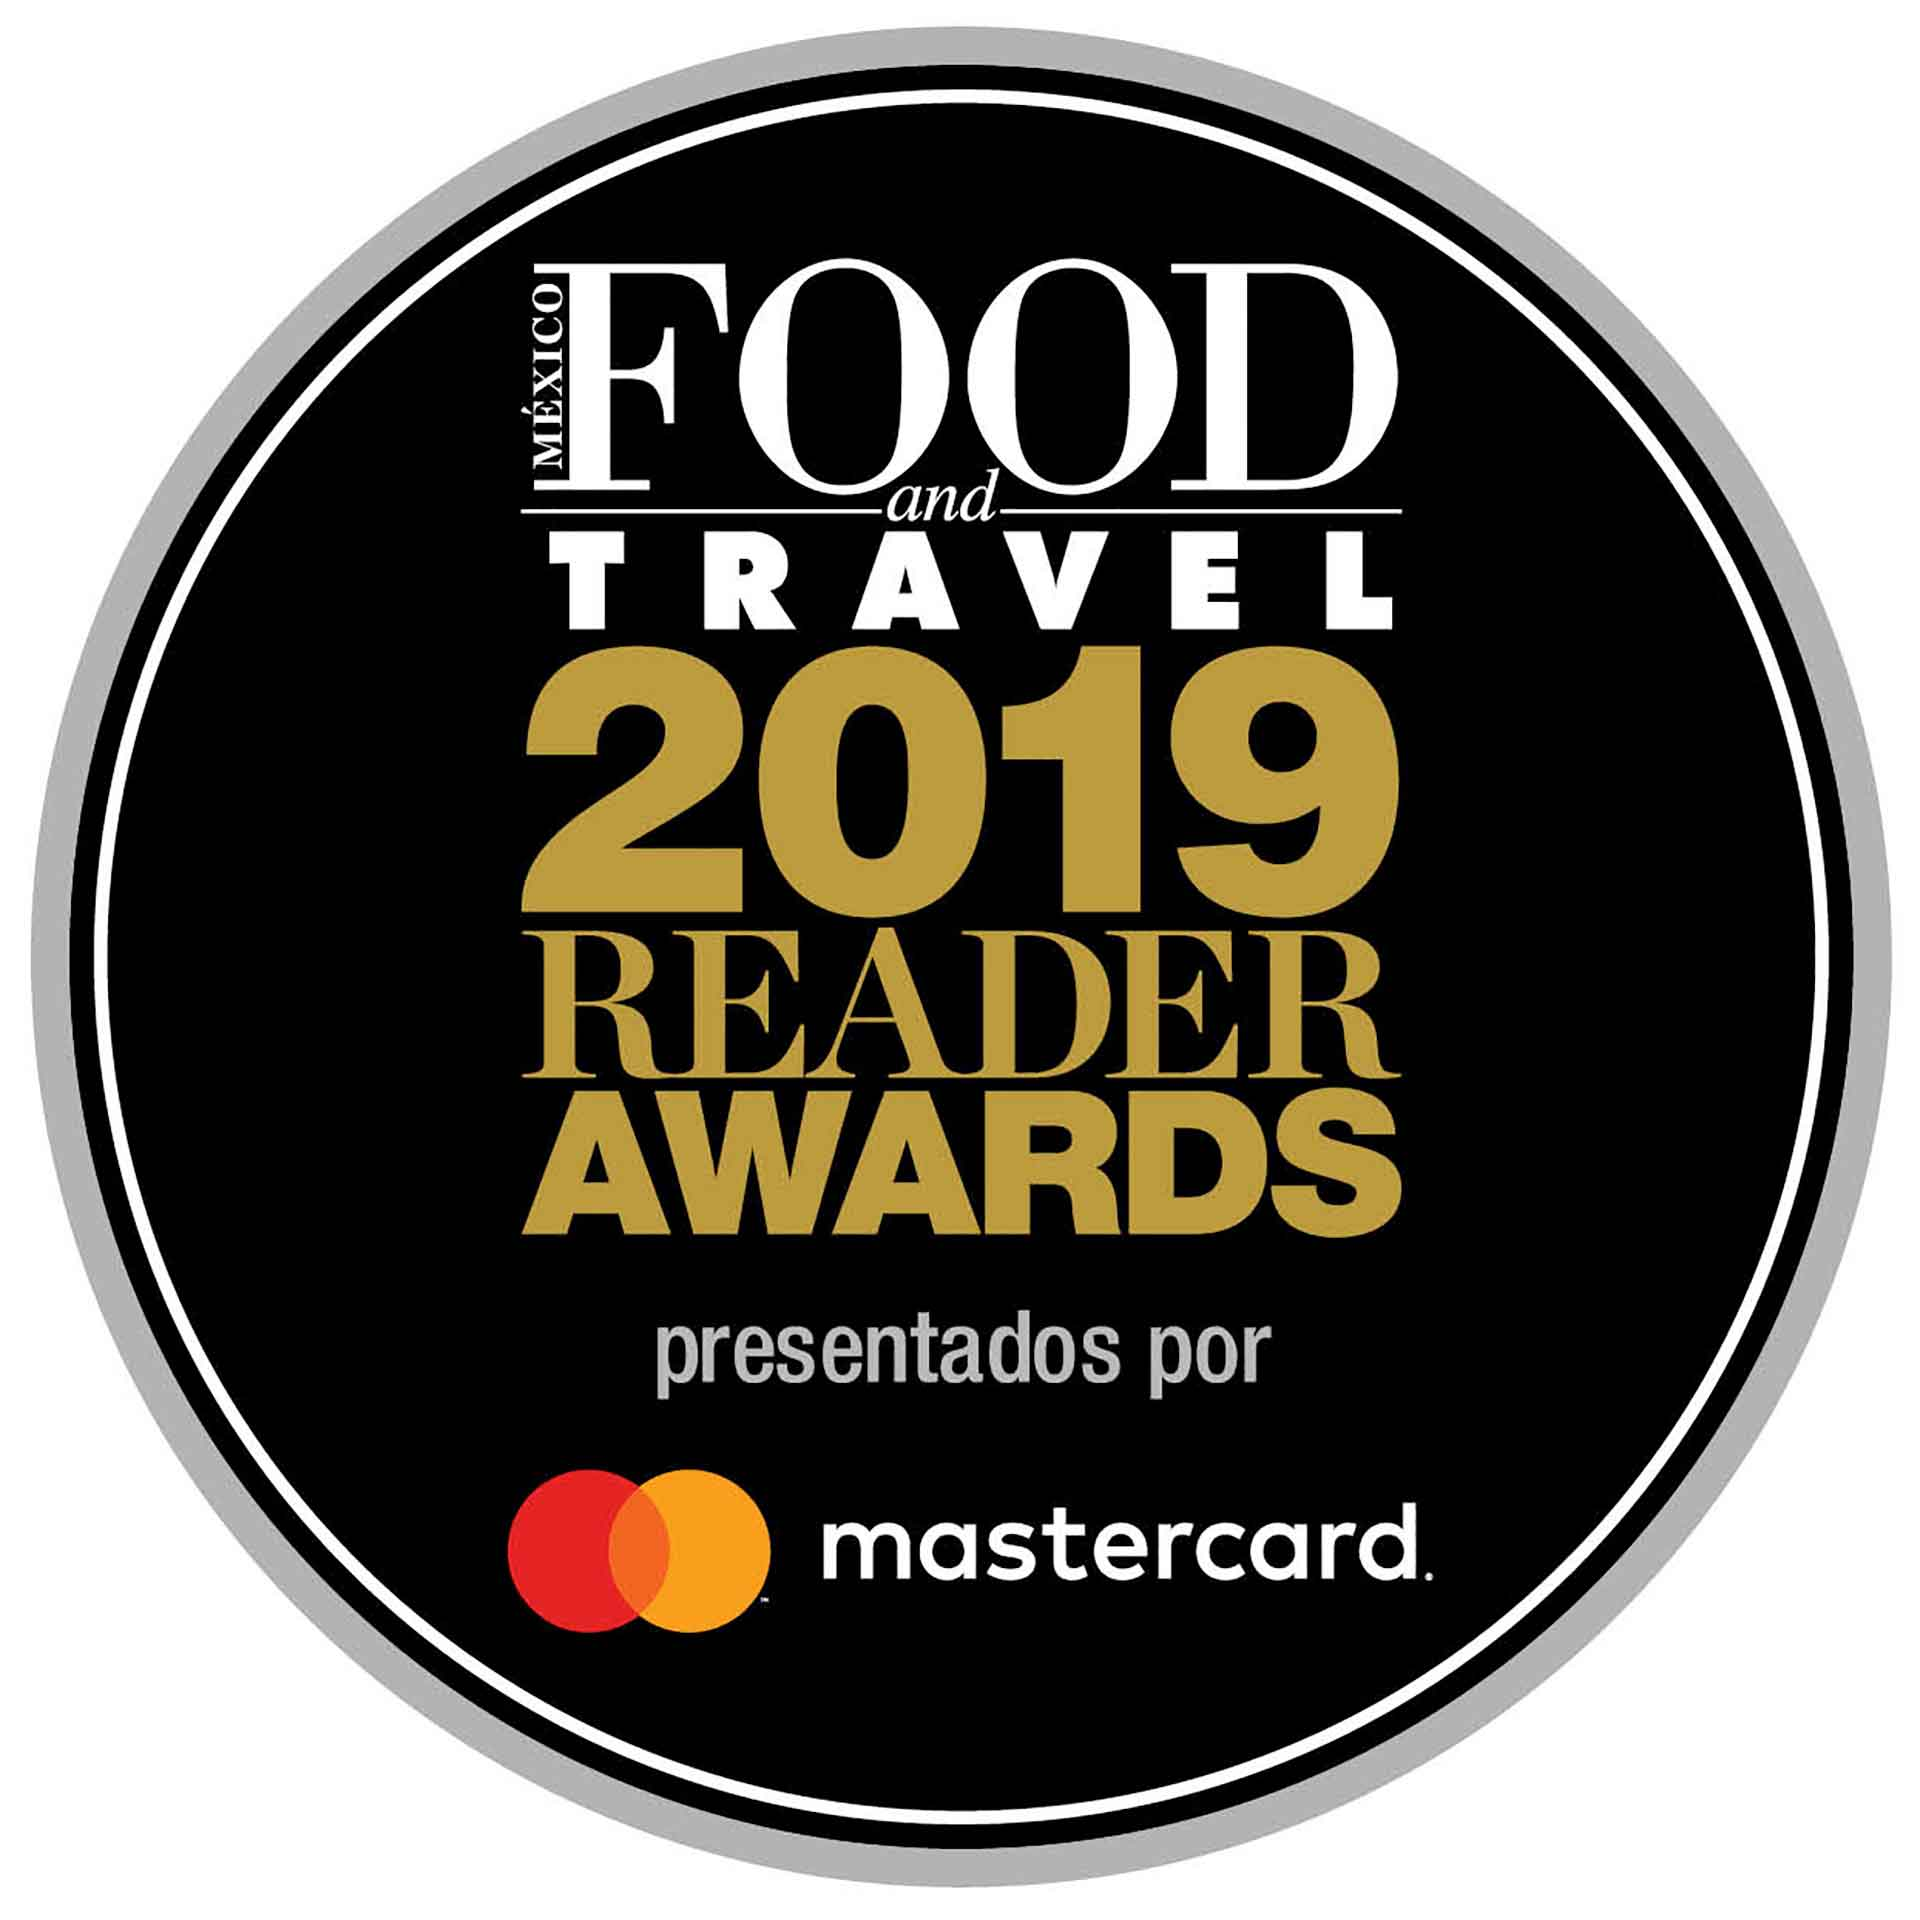 Food and Travel Reader Awards 2019